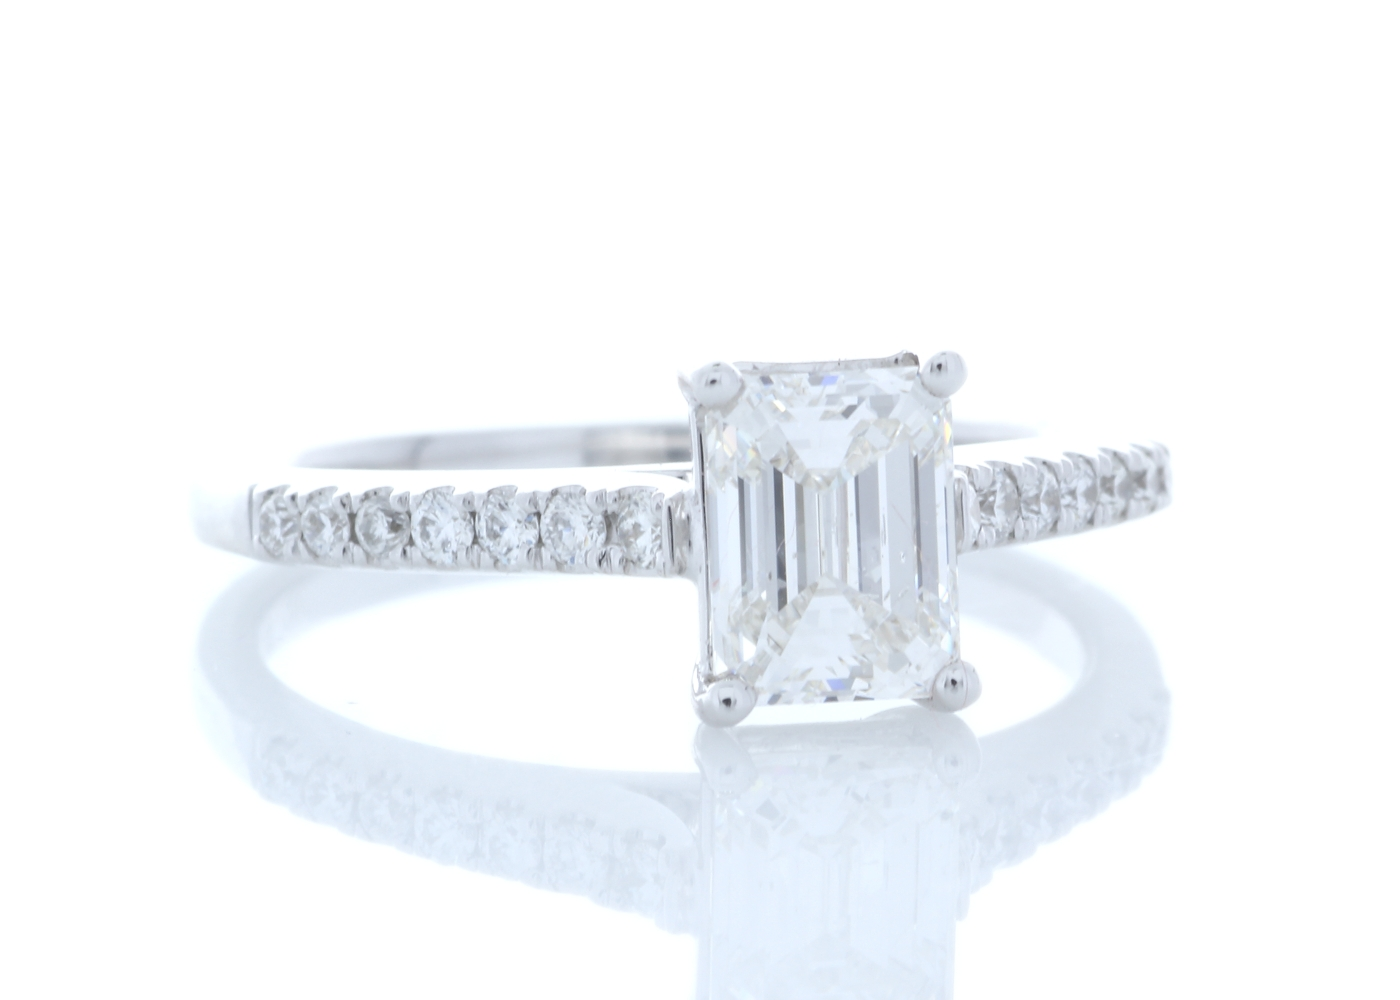 18ct White Gold Stone Set Shoulders Diamond Ring 1.19 Carats - Image 4 of 5